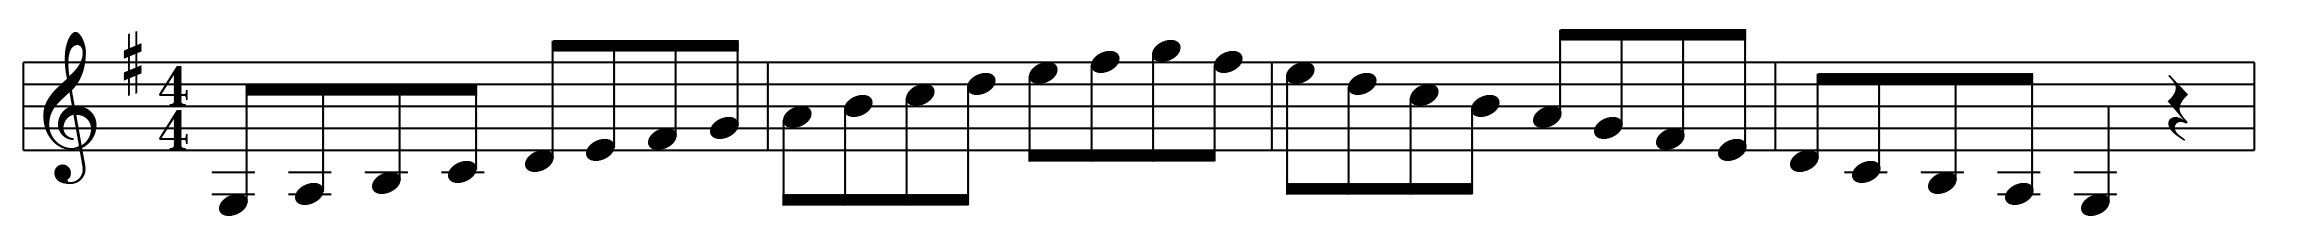 G Major Scale Right Hand